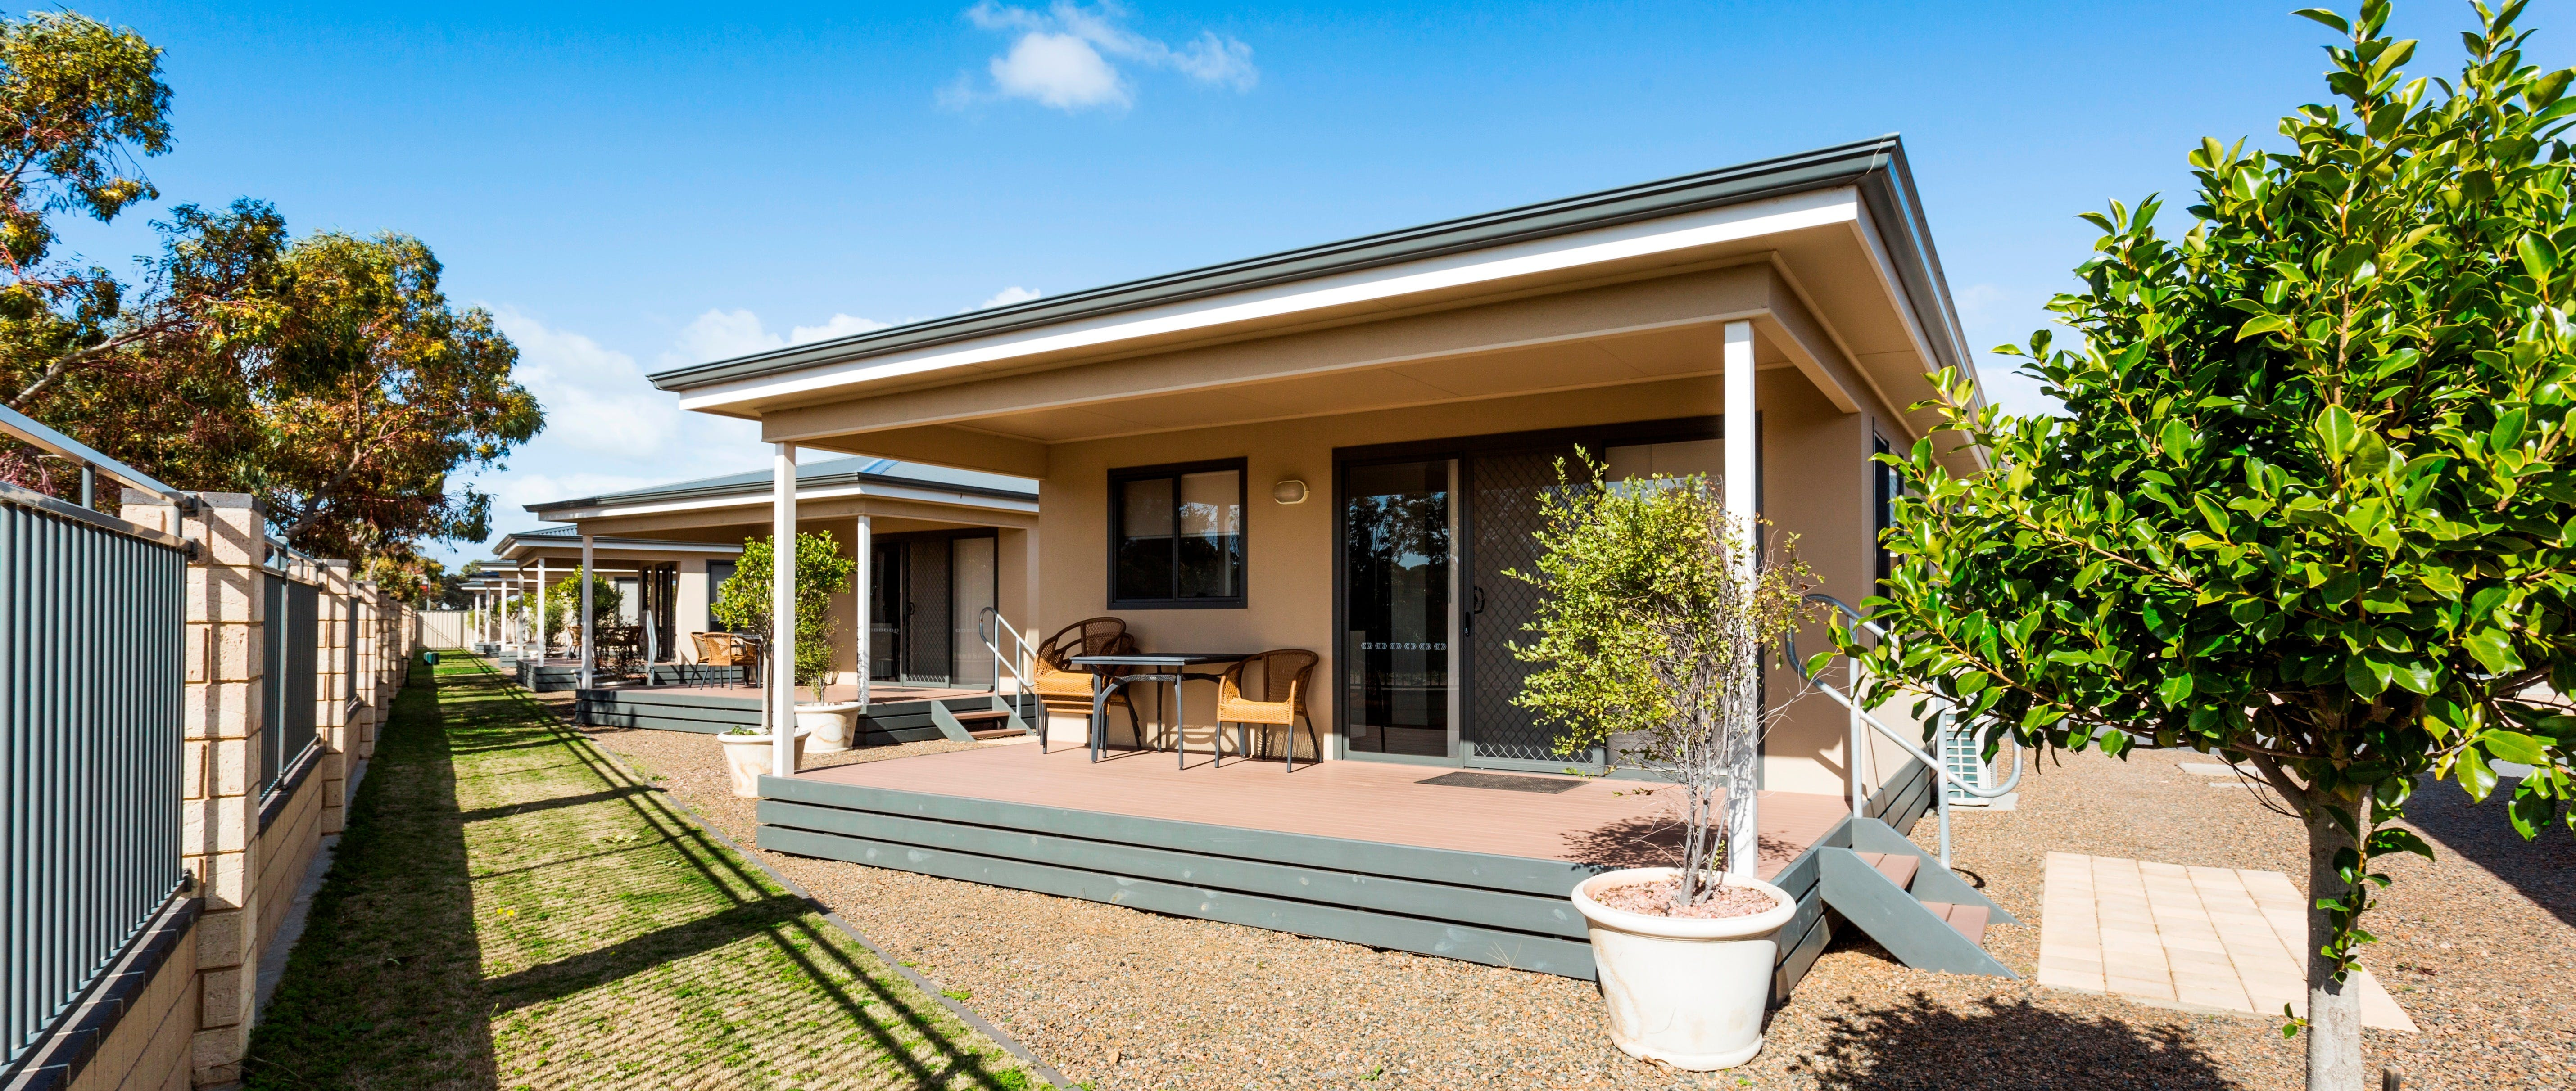 Tumby Villas - Accommodation Cooktown